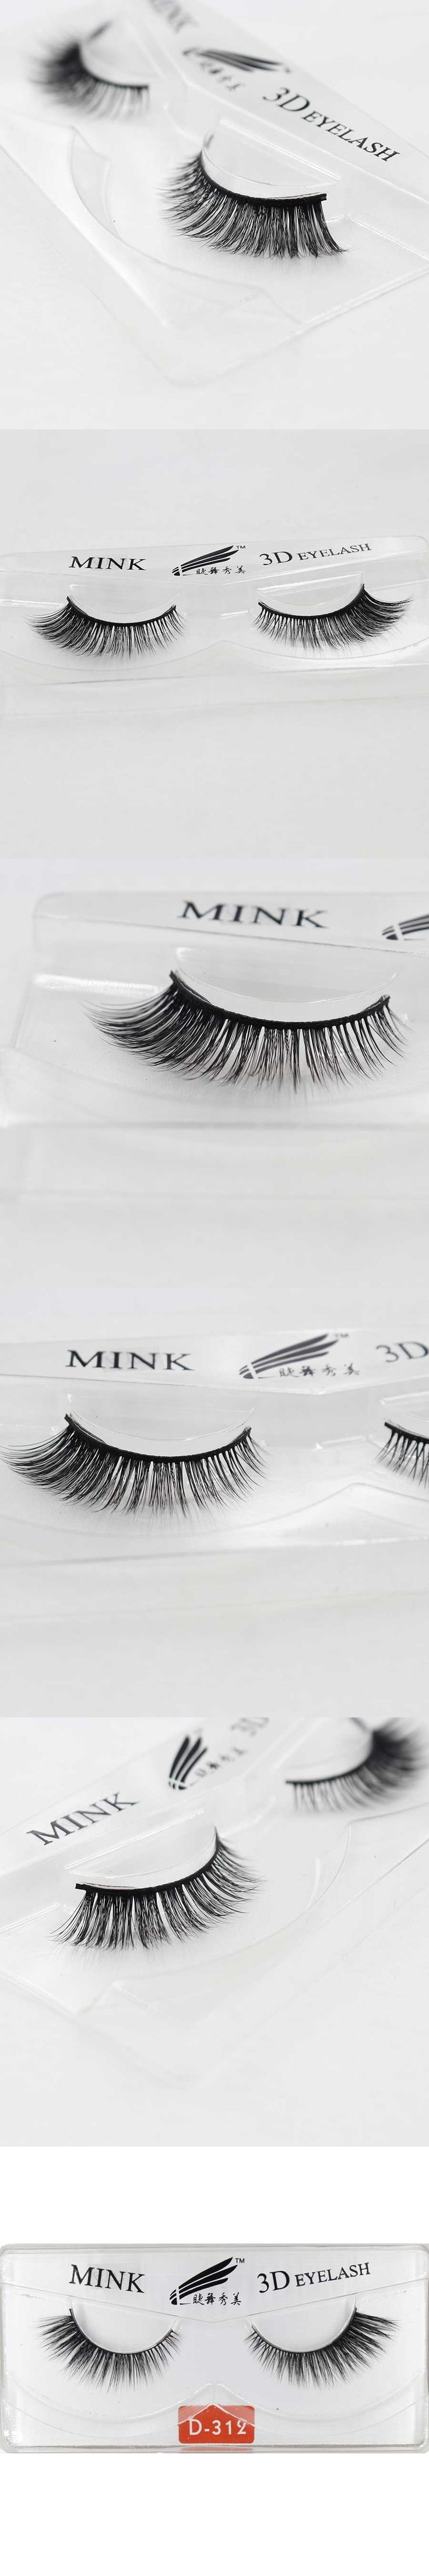 2 Pairs Winged 3D Mink Eyelashes Extension False Eye Lashes +Box Cilios Posticos Naturais Faux Cils Wimpern Nep Wimpers D312-S2